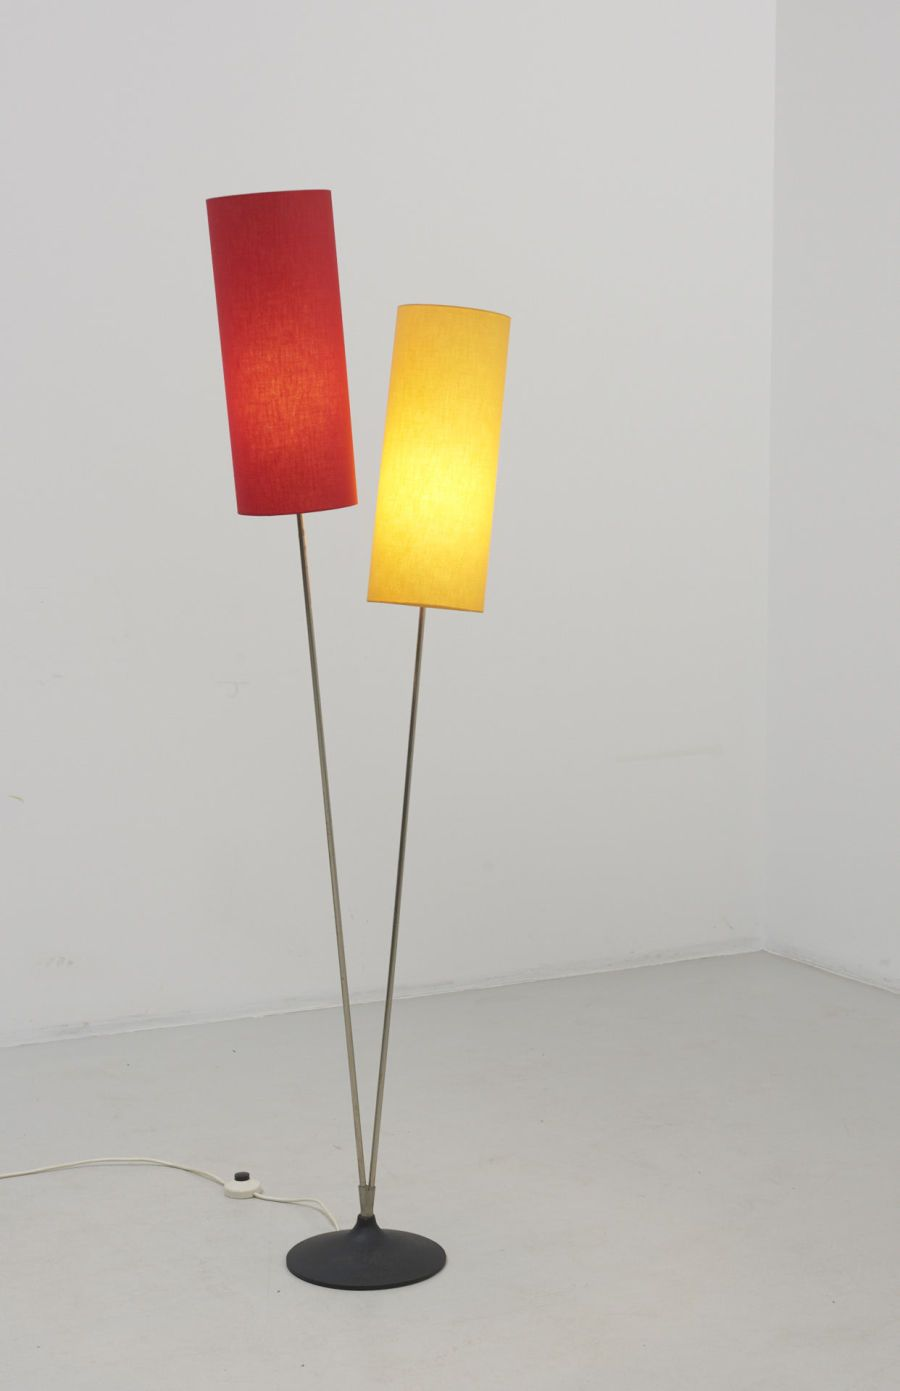 A Floor Lamp In Red And Yellow 1960s Design Modest Furniture In 2020 Lamp Floor Lamp Red Yellow